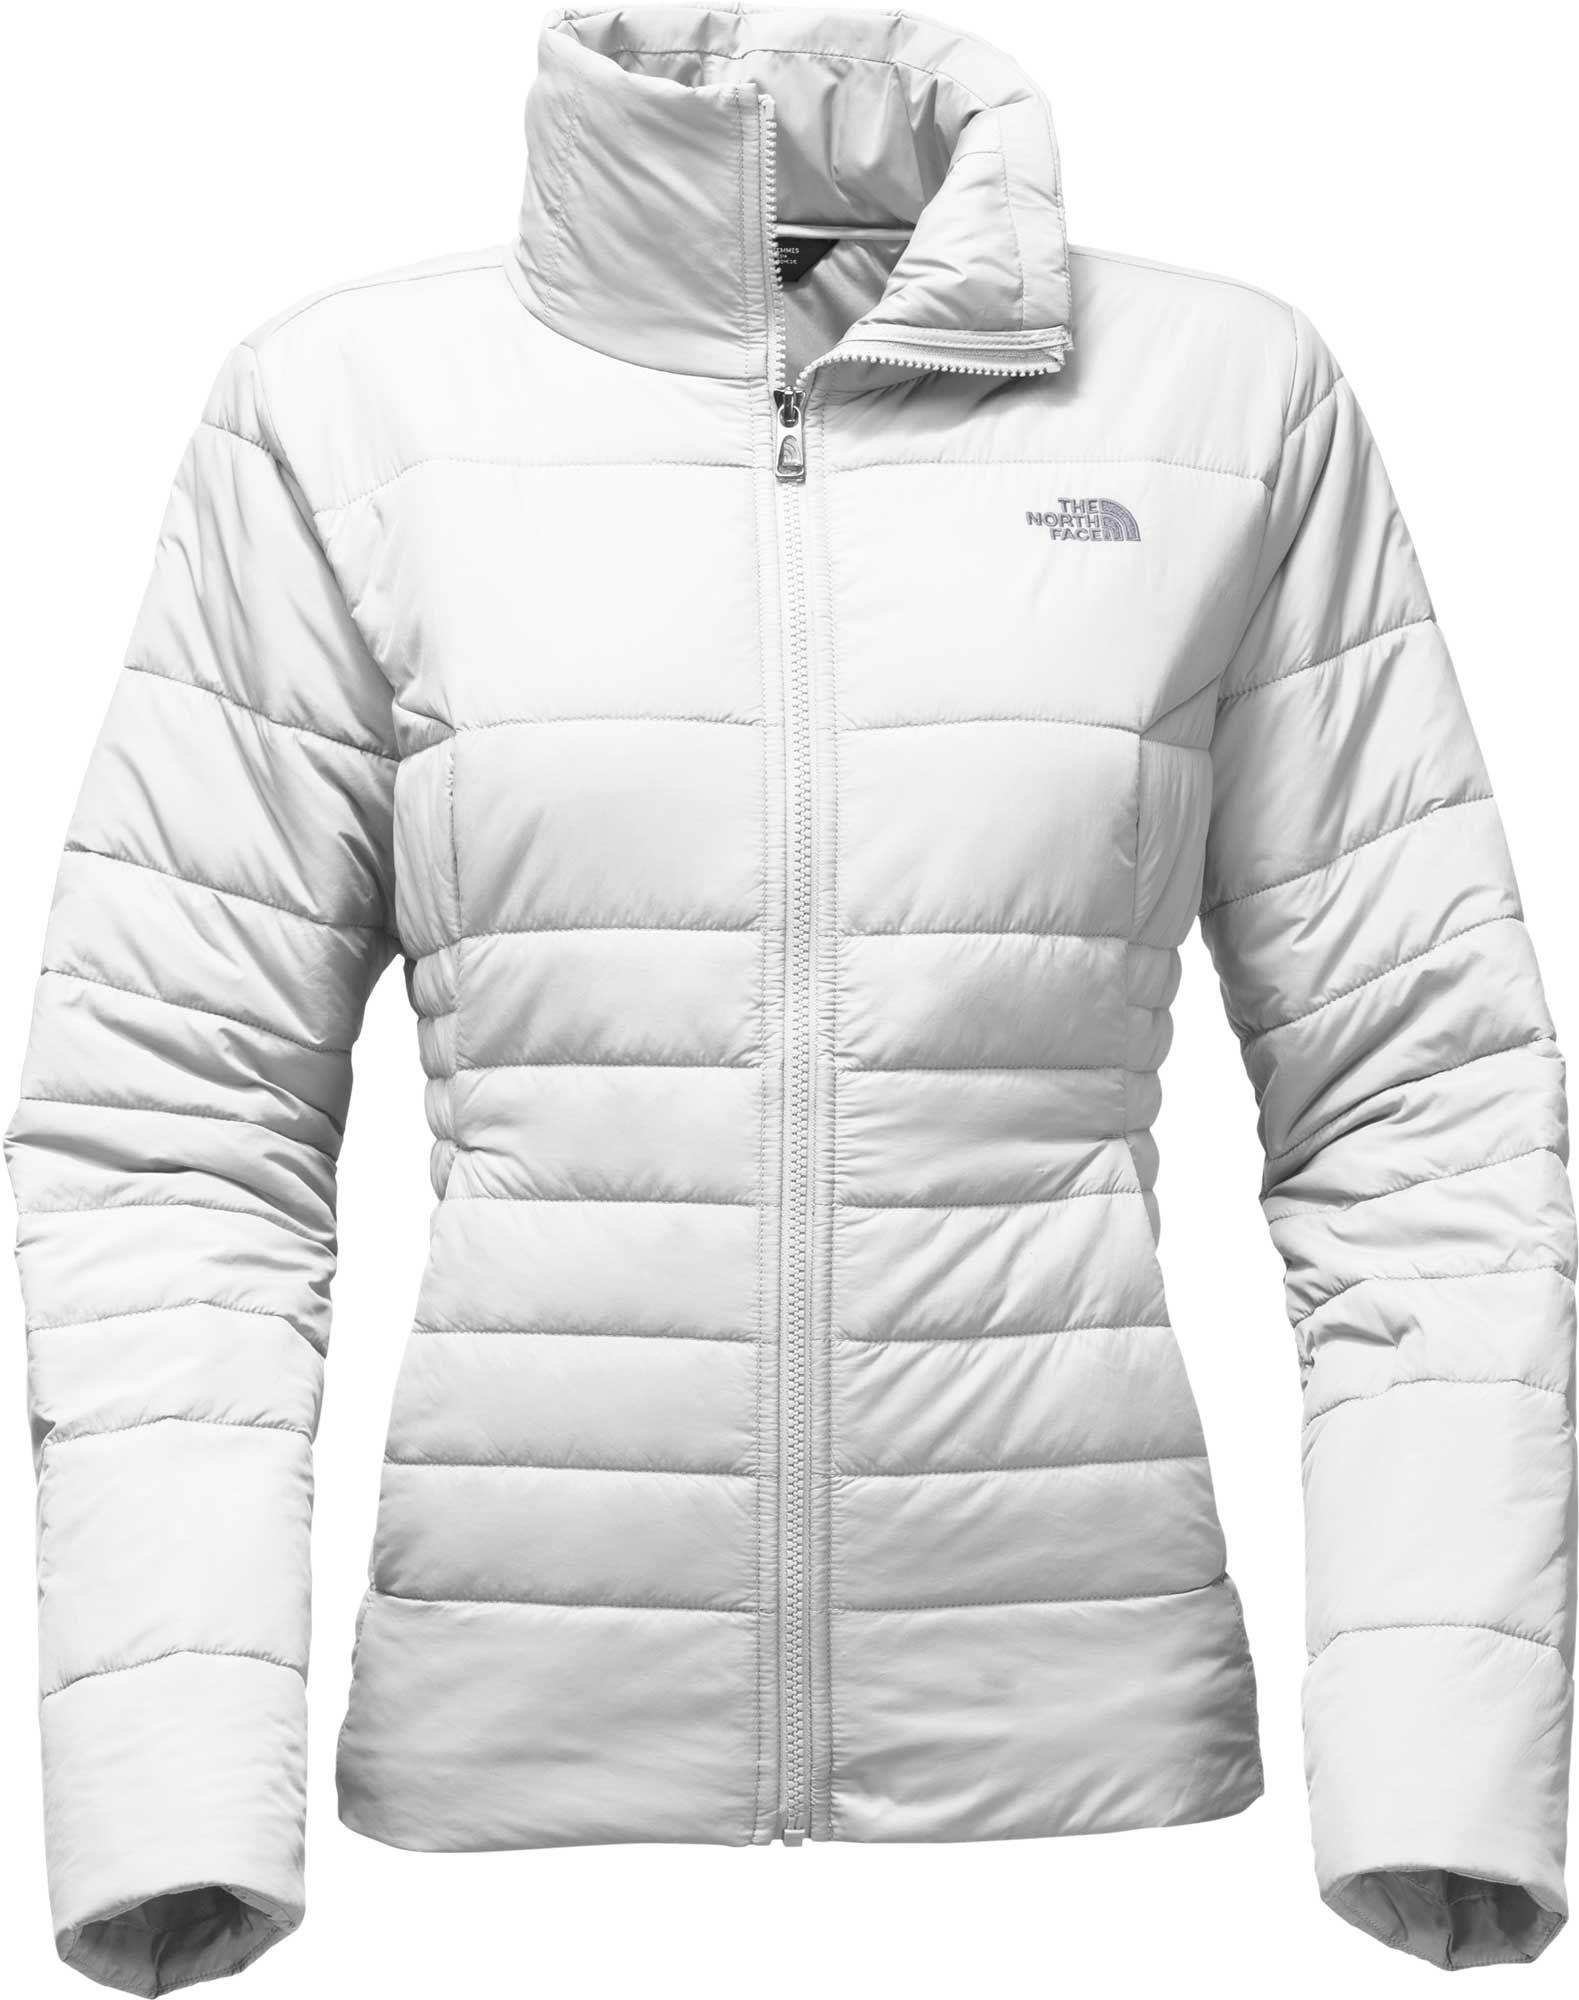 cced6fe91 The North Face White Harway Insulated Jacket